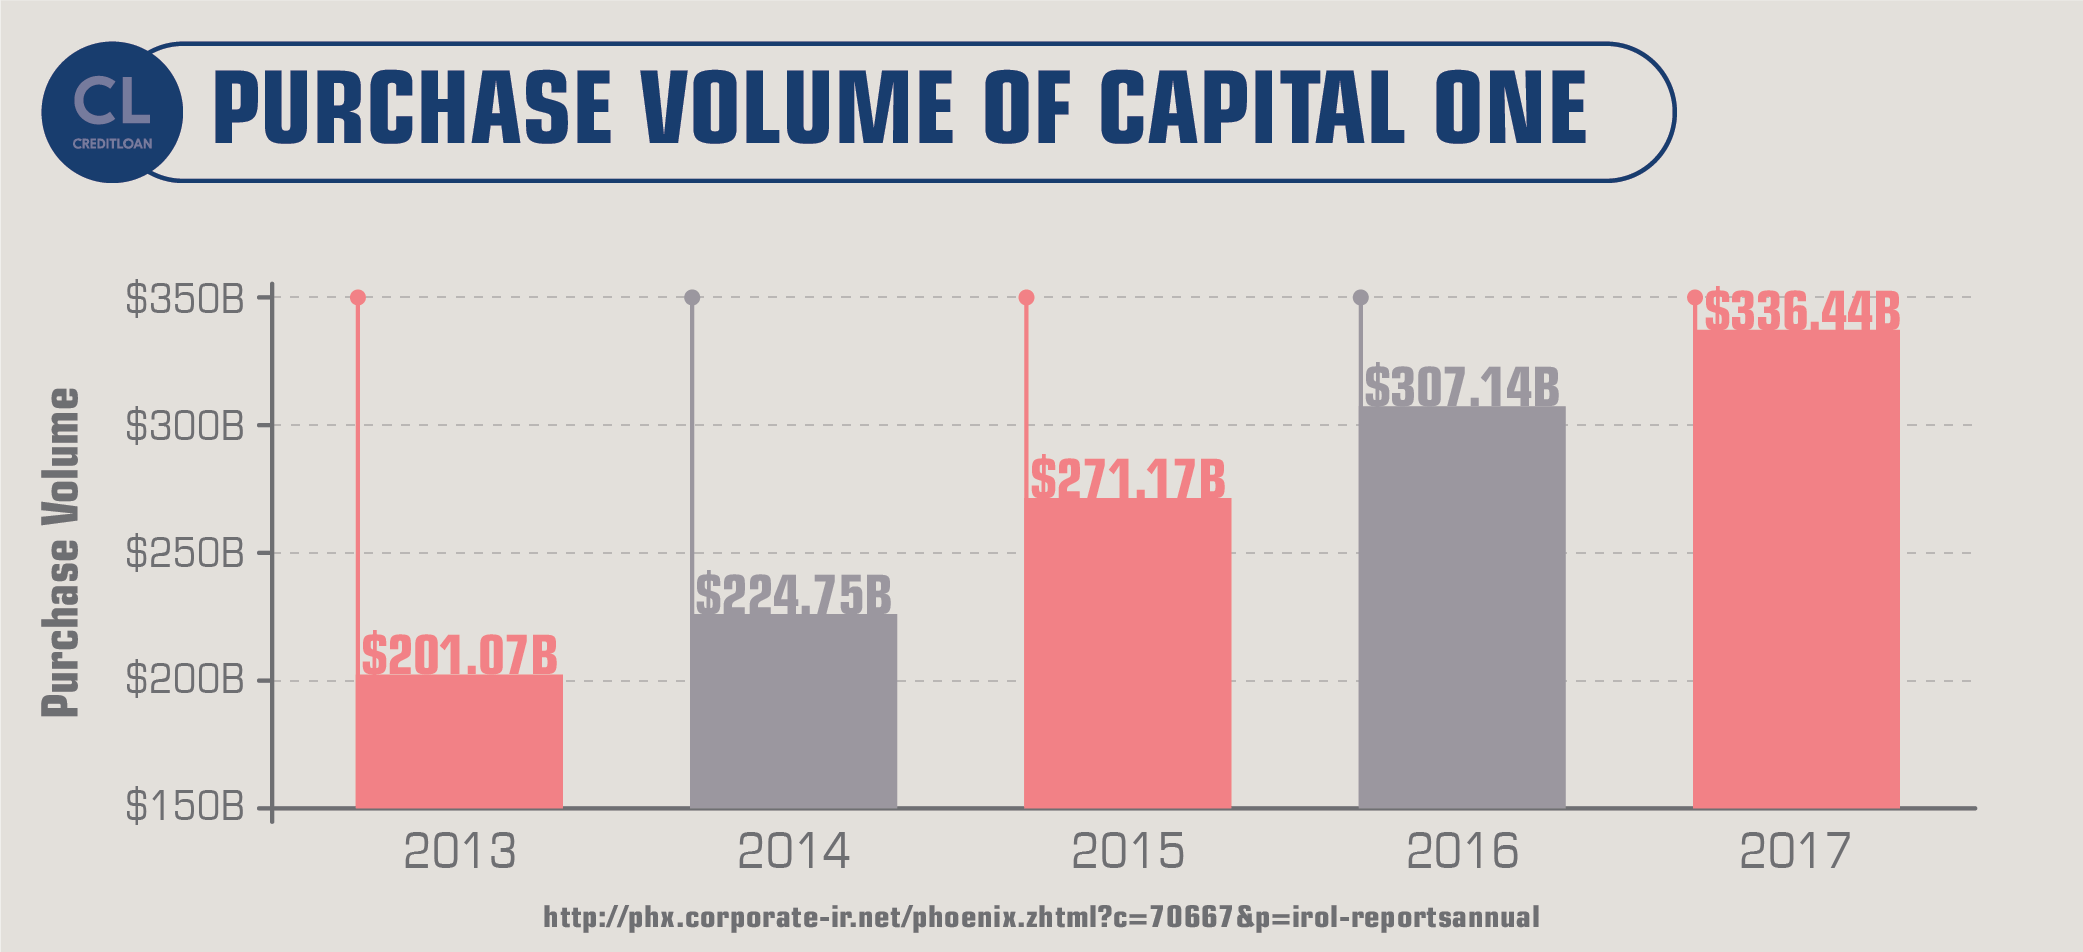 Purchase Volume of Capital One fro 2013-2017